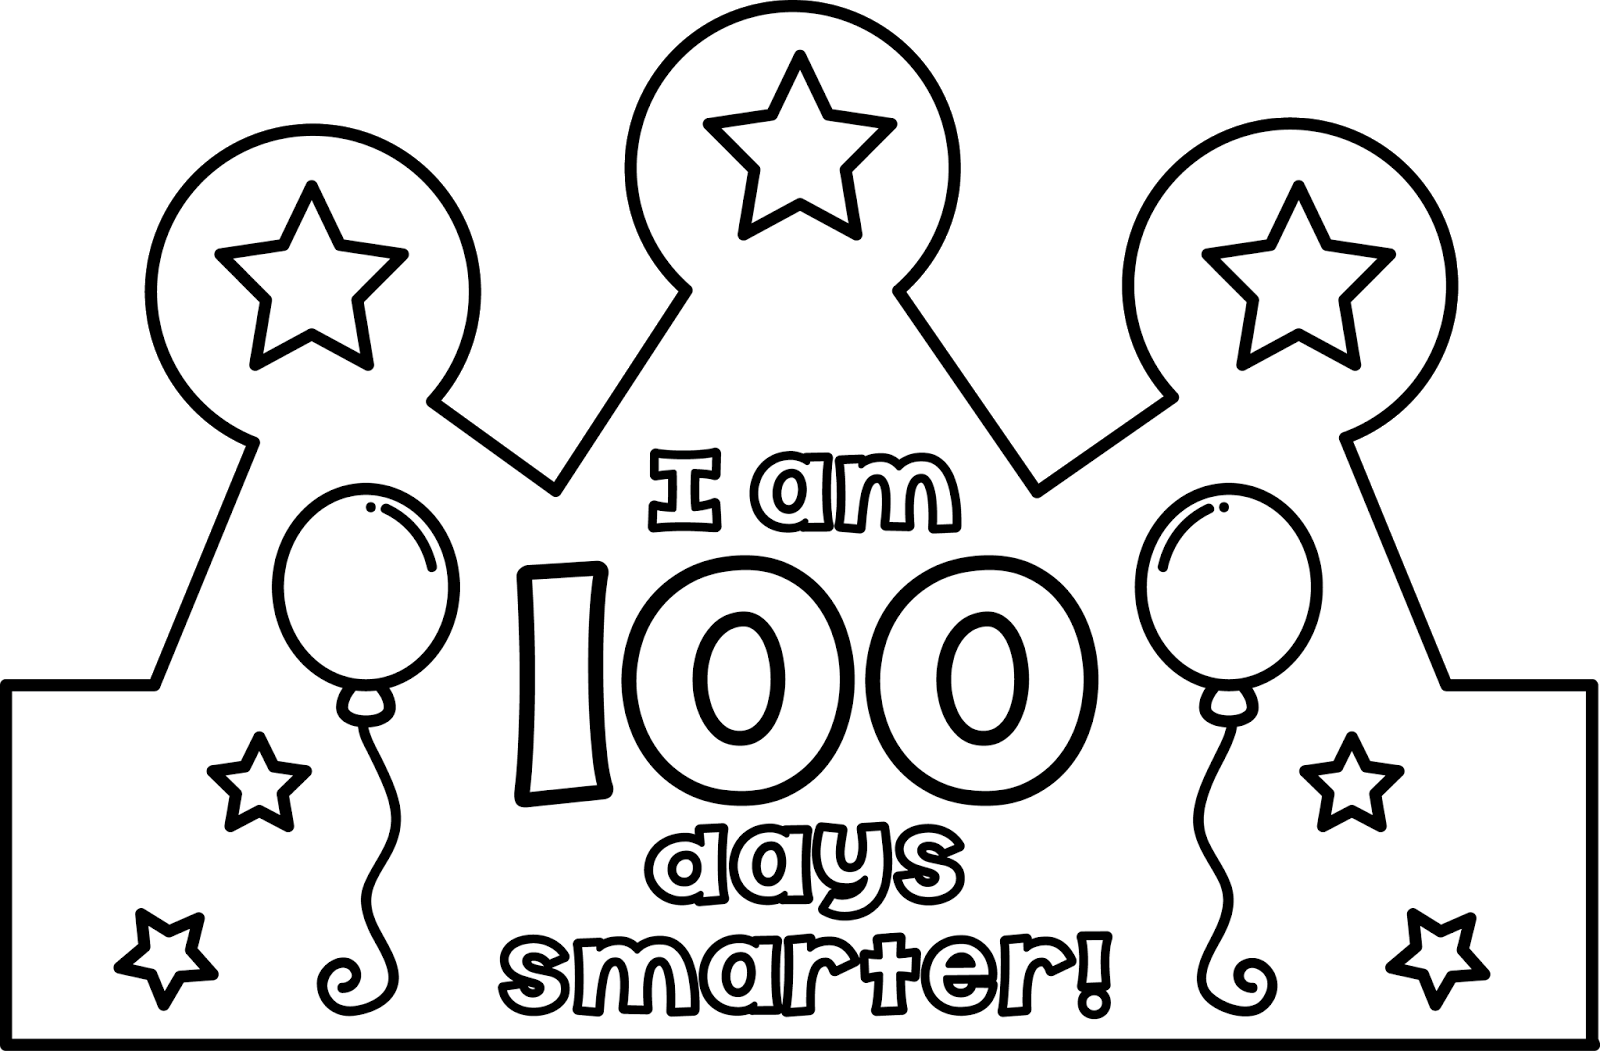 100th day of school clipart png transparent stock Teacher Laura: 100th Day Crown png transparent stock